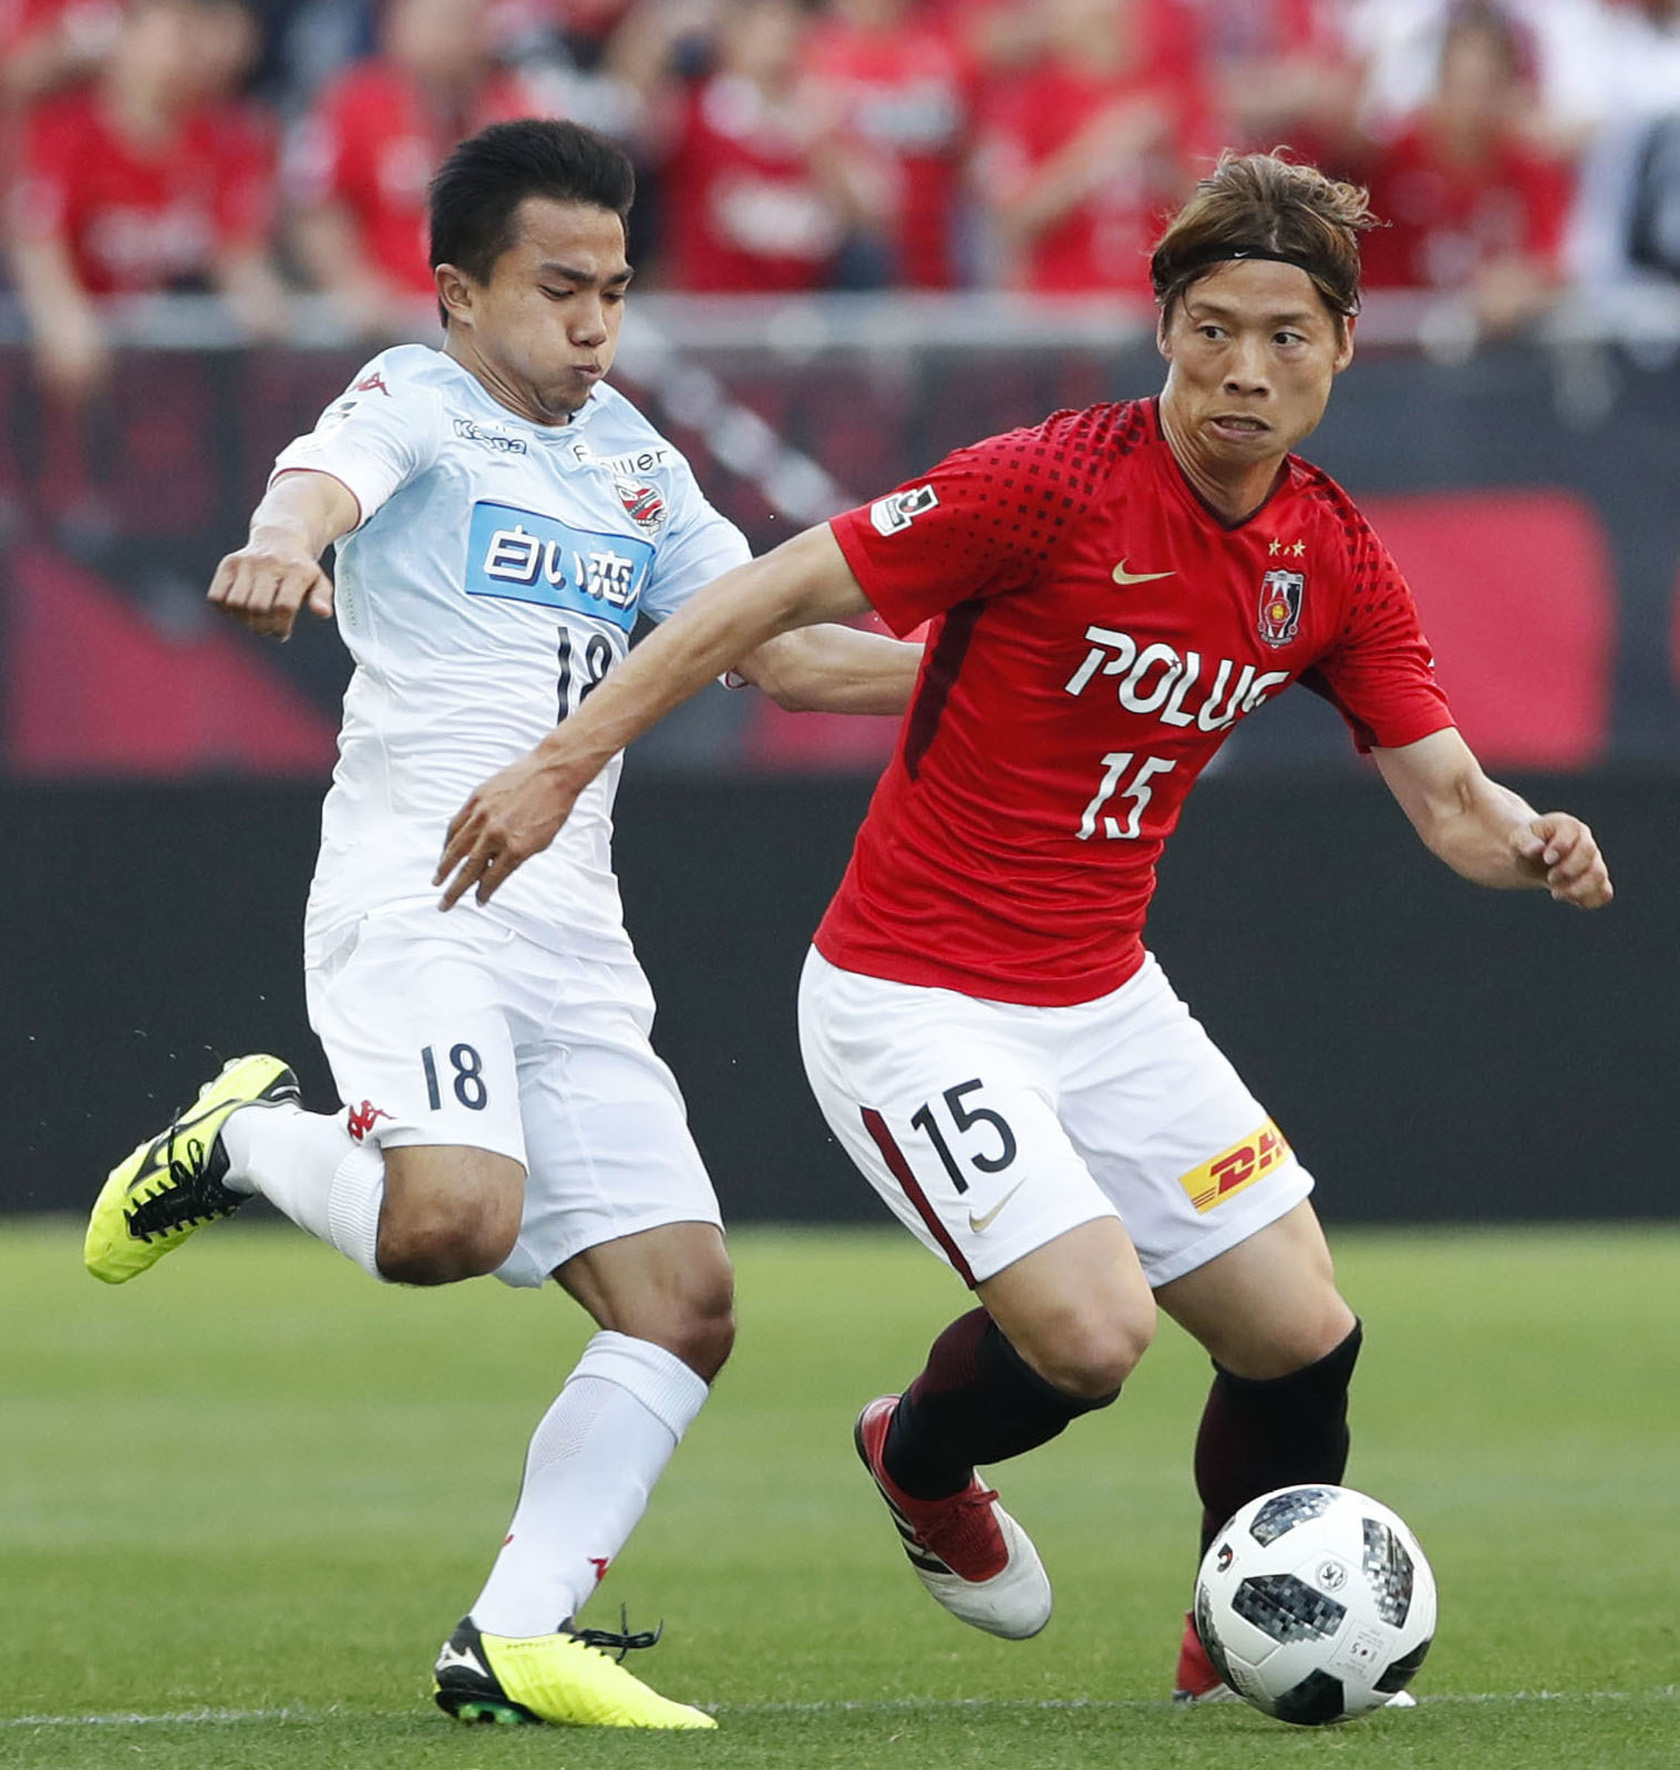 Chanathip Songkrasin (left) of Consadole Sapporo and Kazuki Nagasawa (right) of Urawa Reds fight for the ball during their J1 League match at Saitama Stadium in Saitama, north of Tokyo on Saturday.